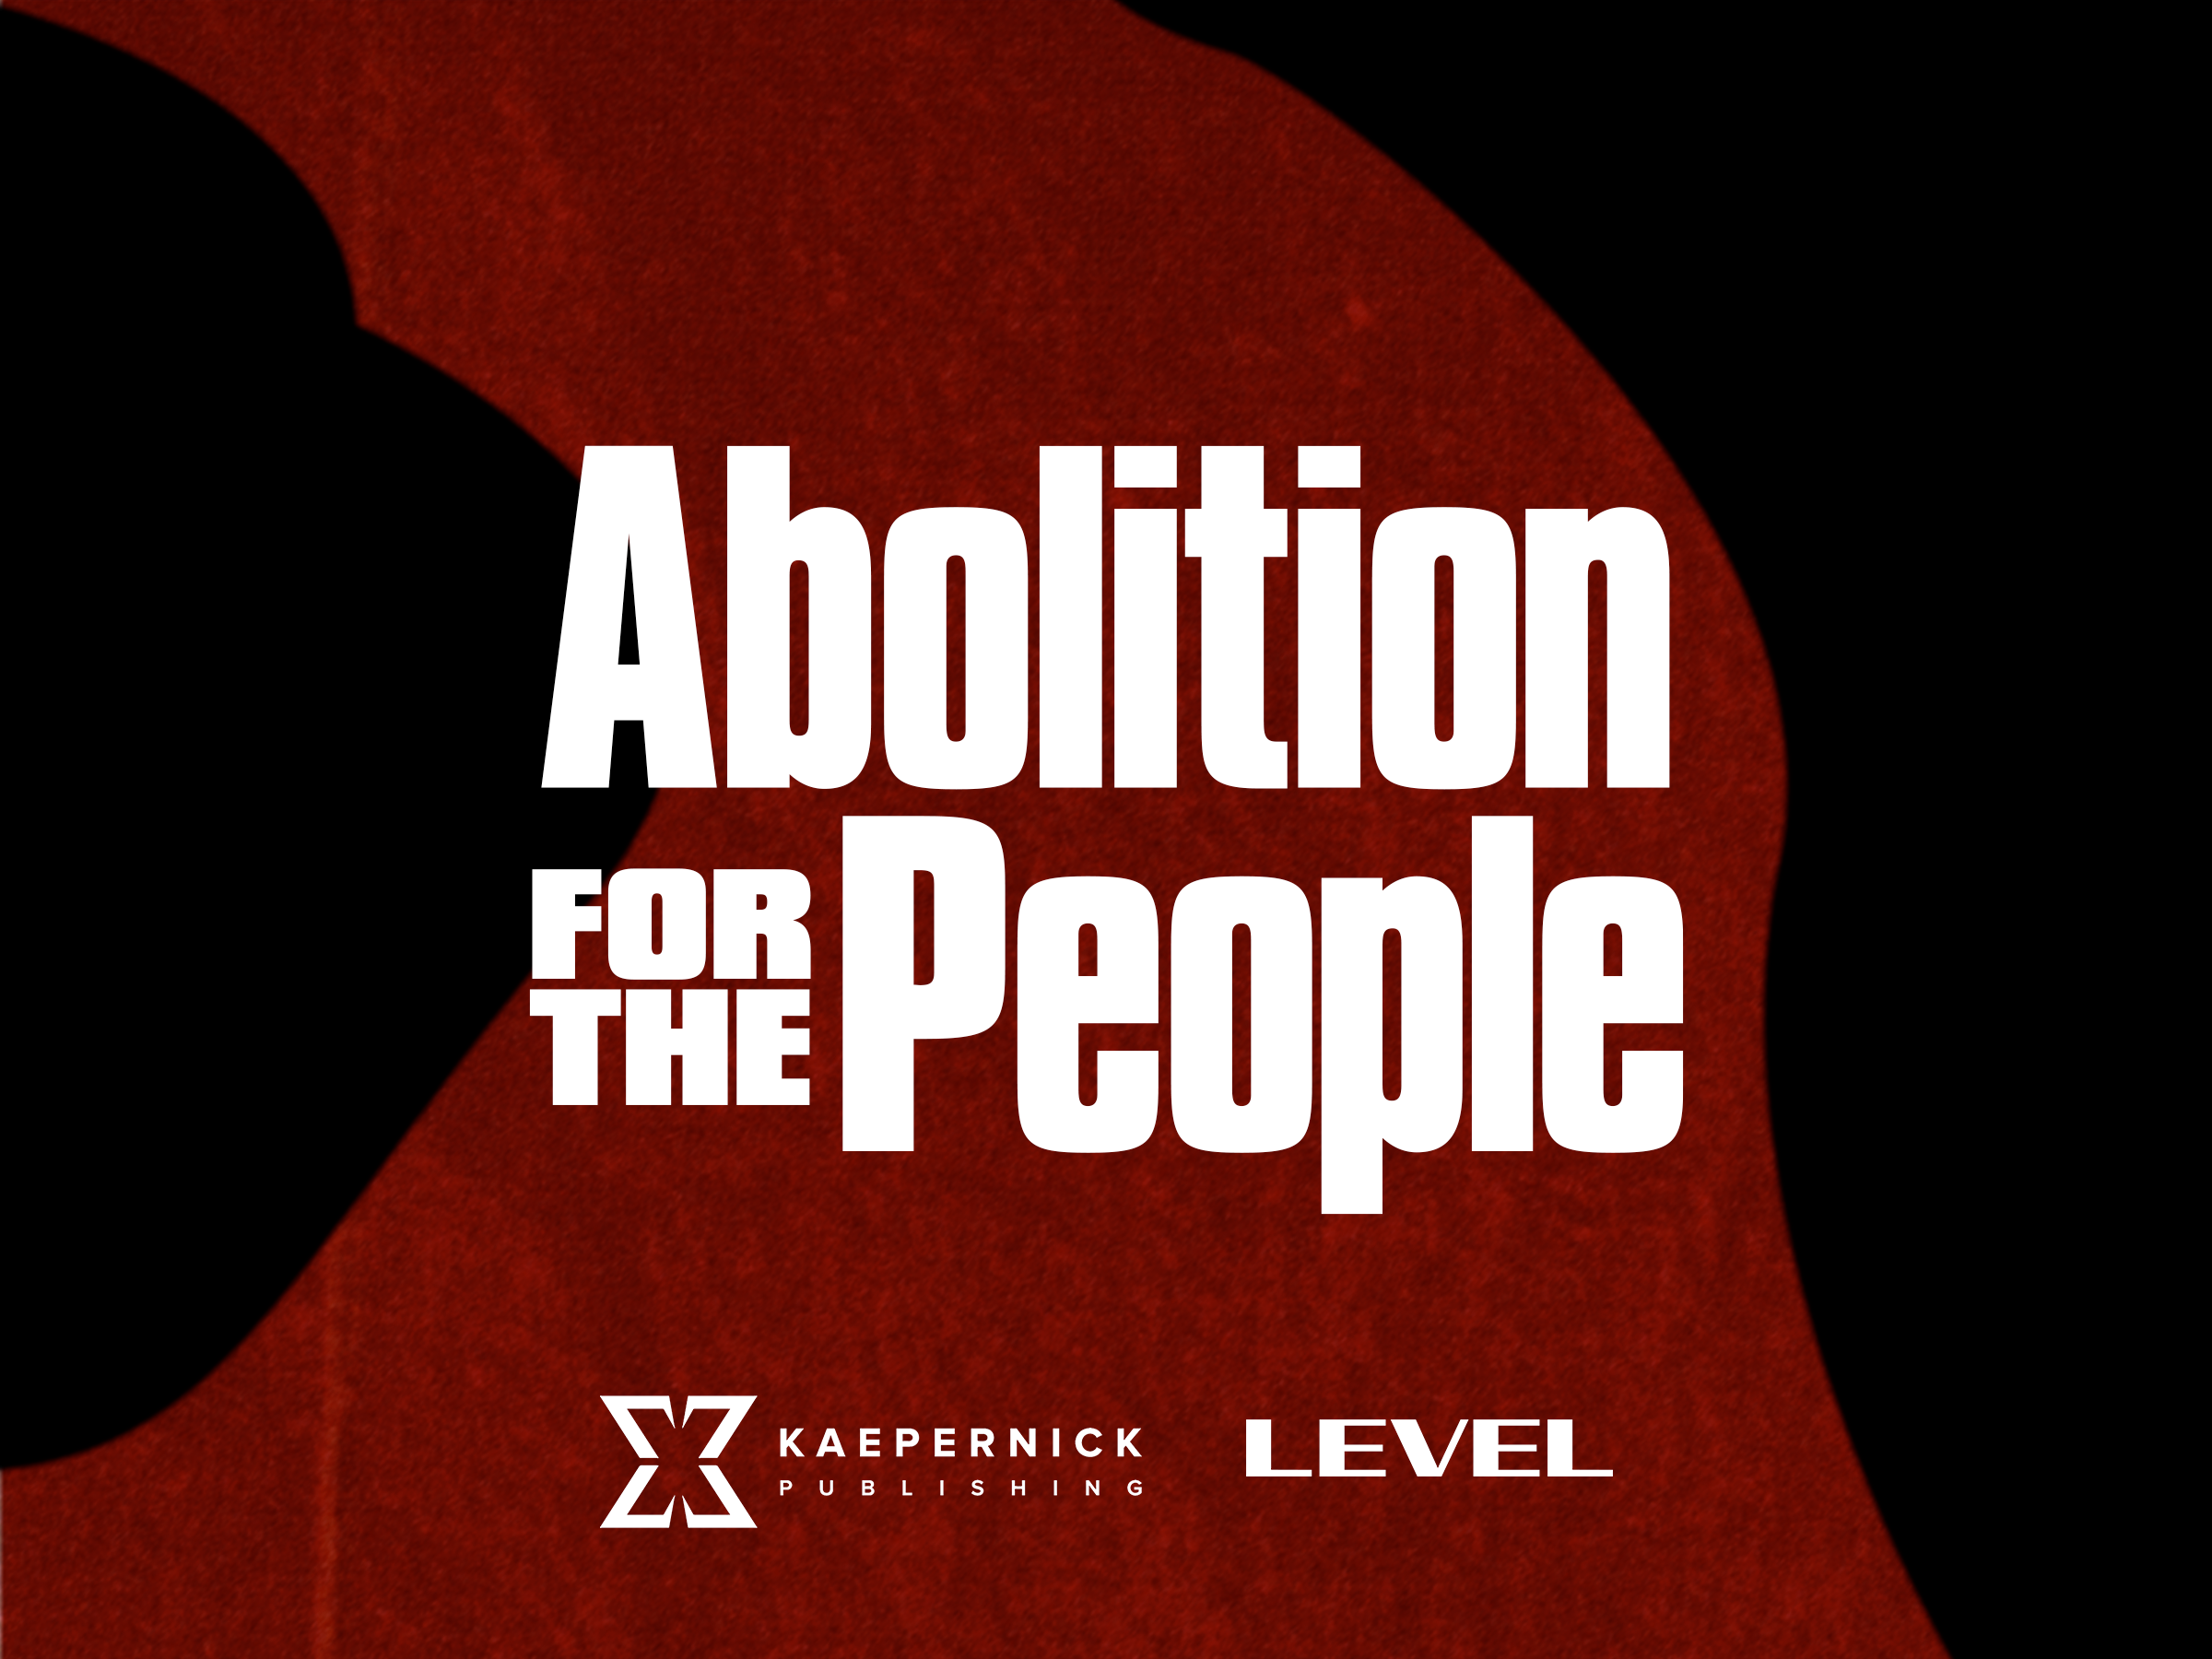 Graphic text: Abolition for the People by Kaepernick Publishing and LEVEL